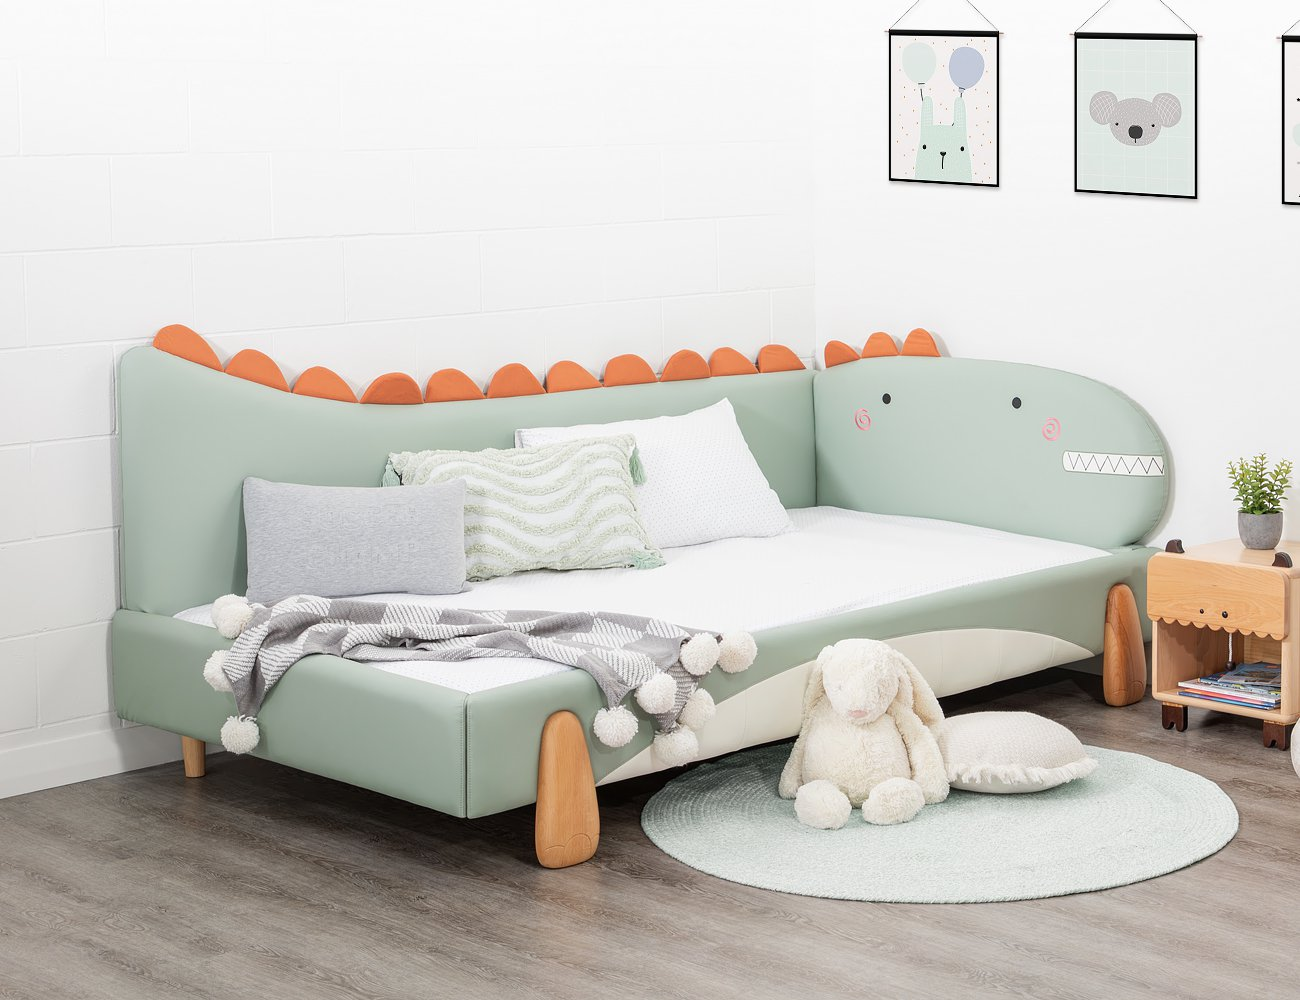 Dinosaur King Single Bed Frame